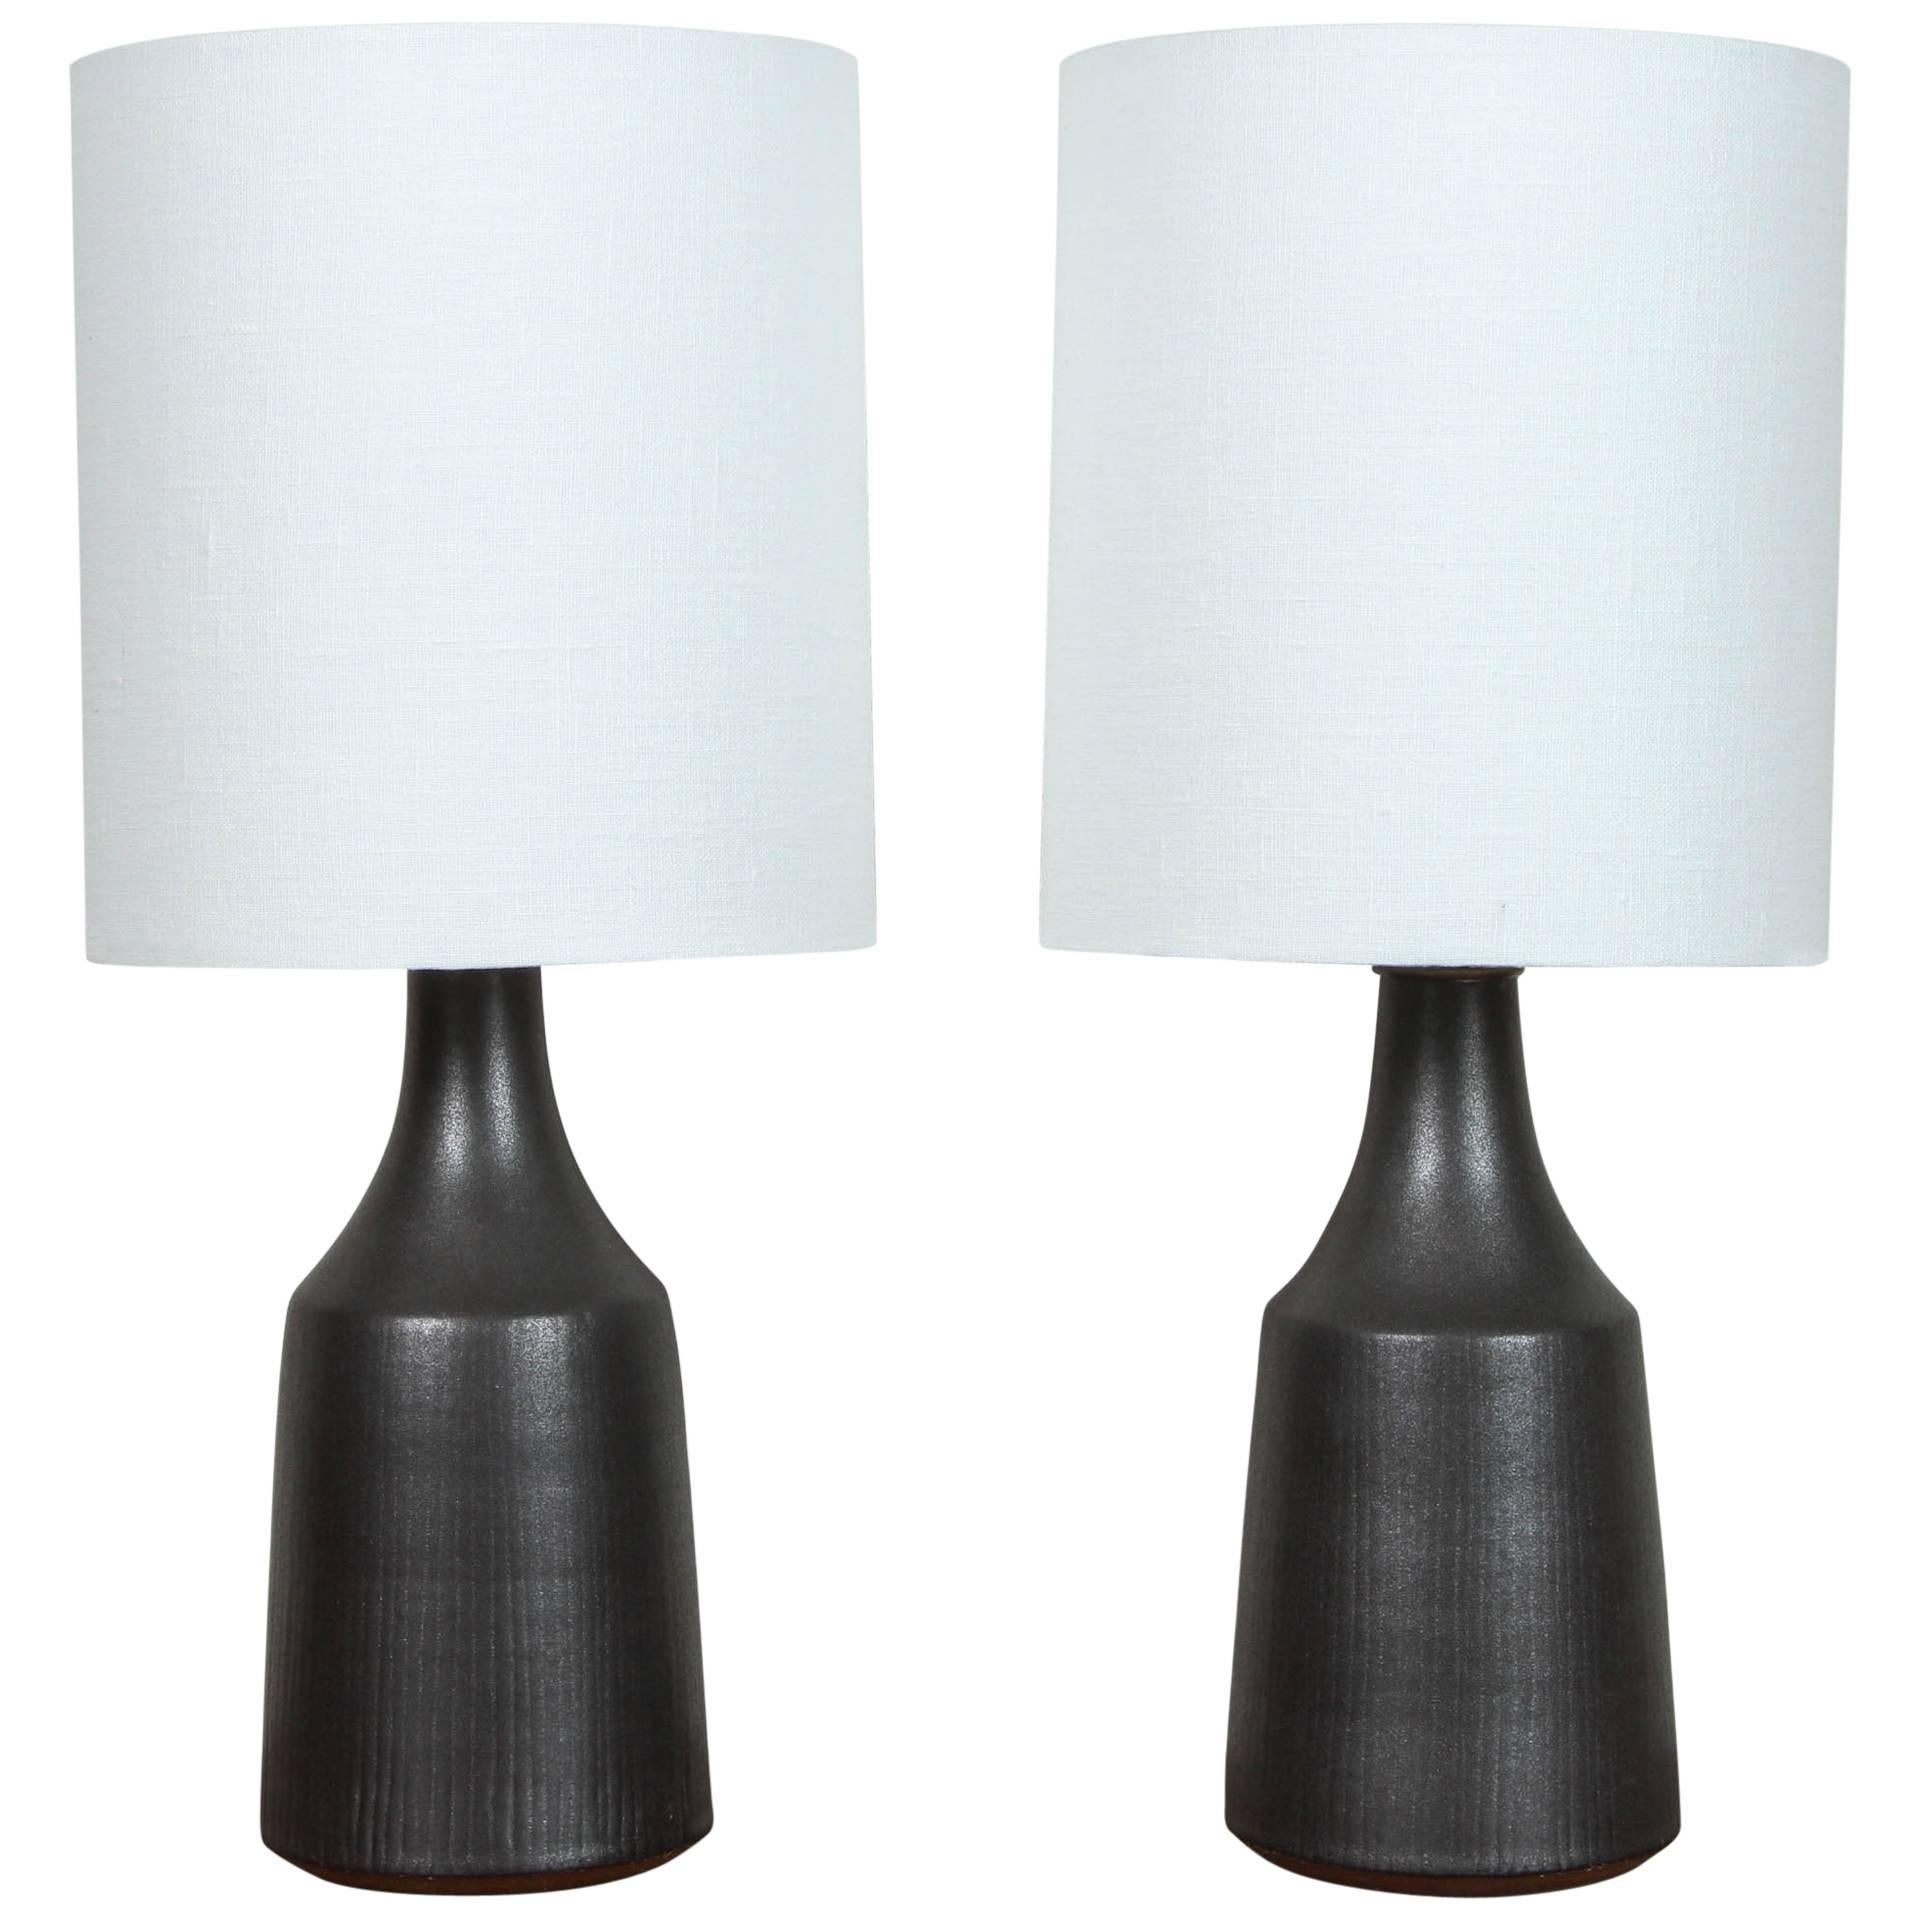 """Pair of Black """"Classic"""" Lamps by Victoria Morris for Lawson-Fenning"""